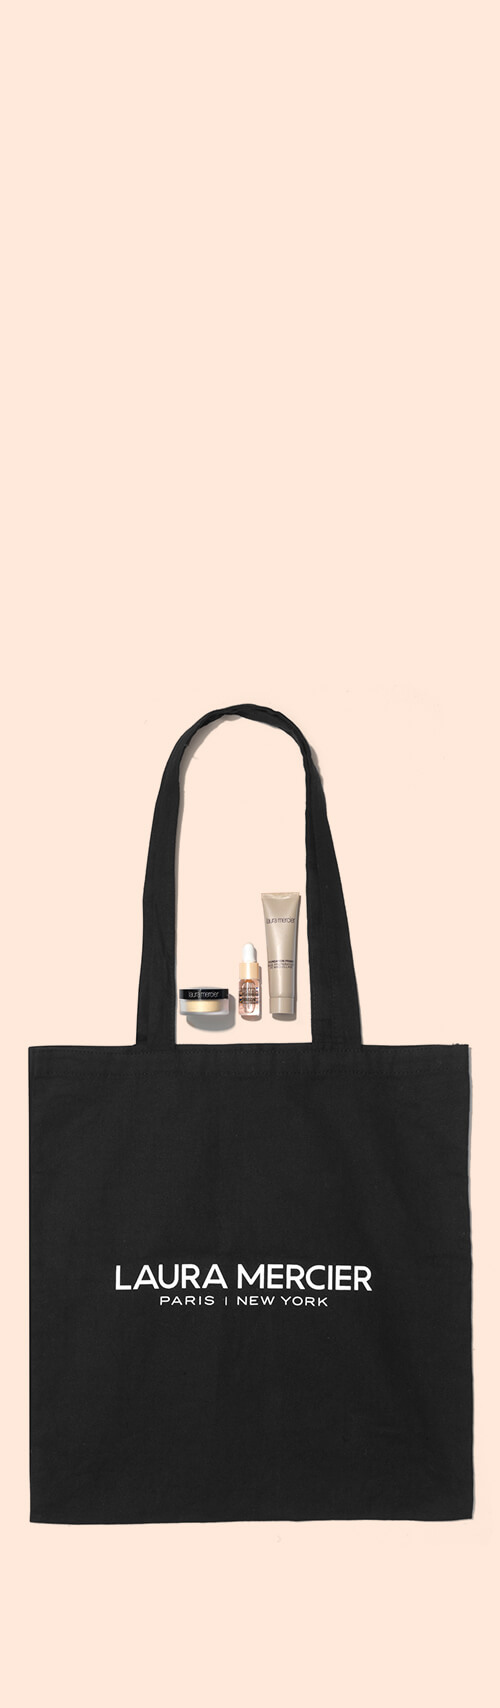 Laura Mercier Mini Makeup Trio & Tote Bag